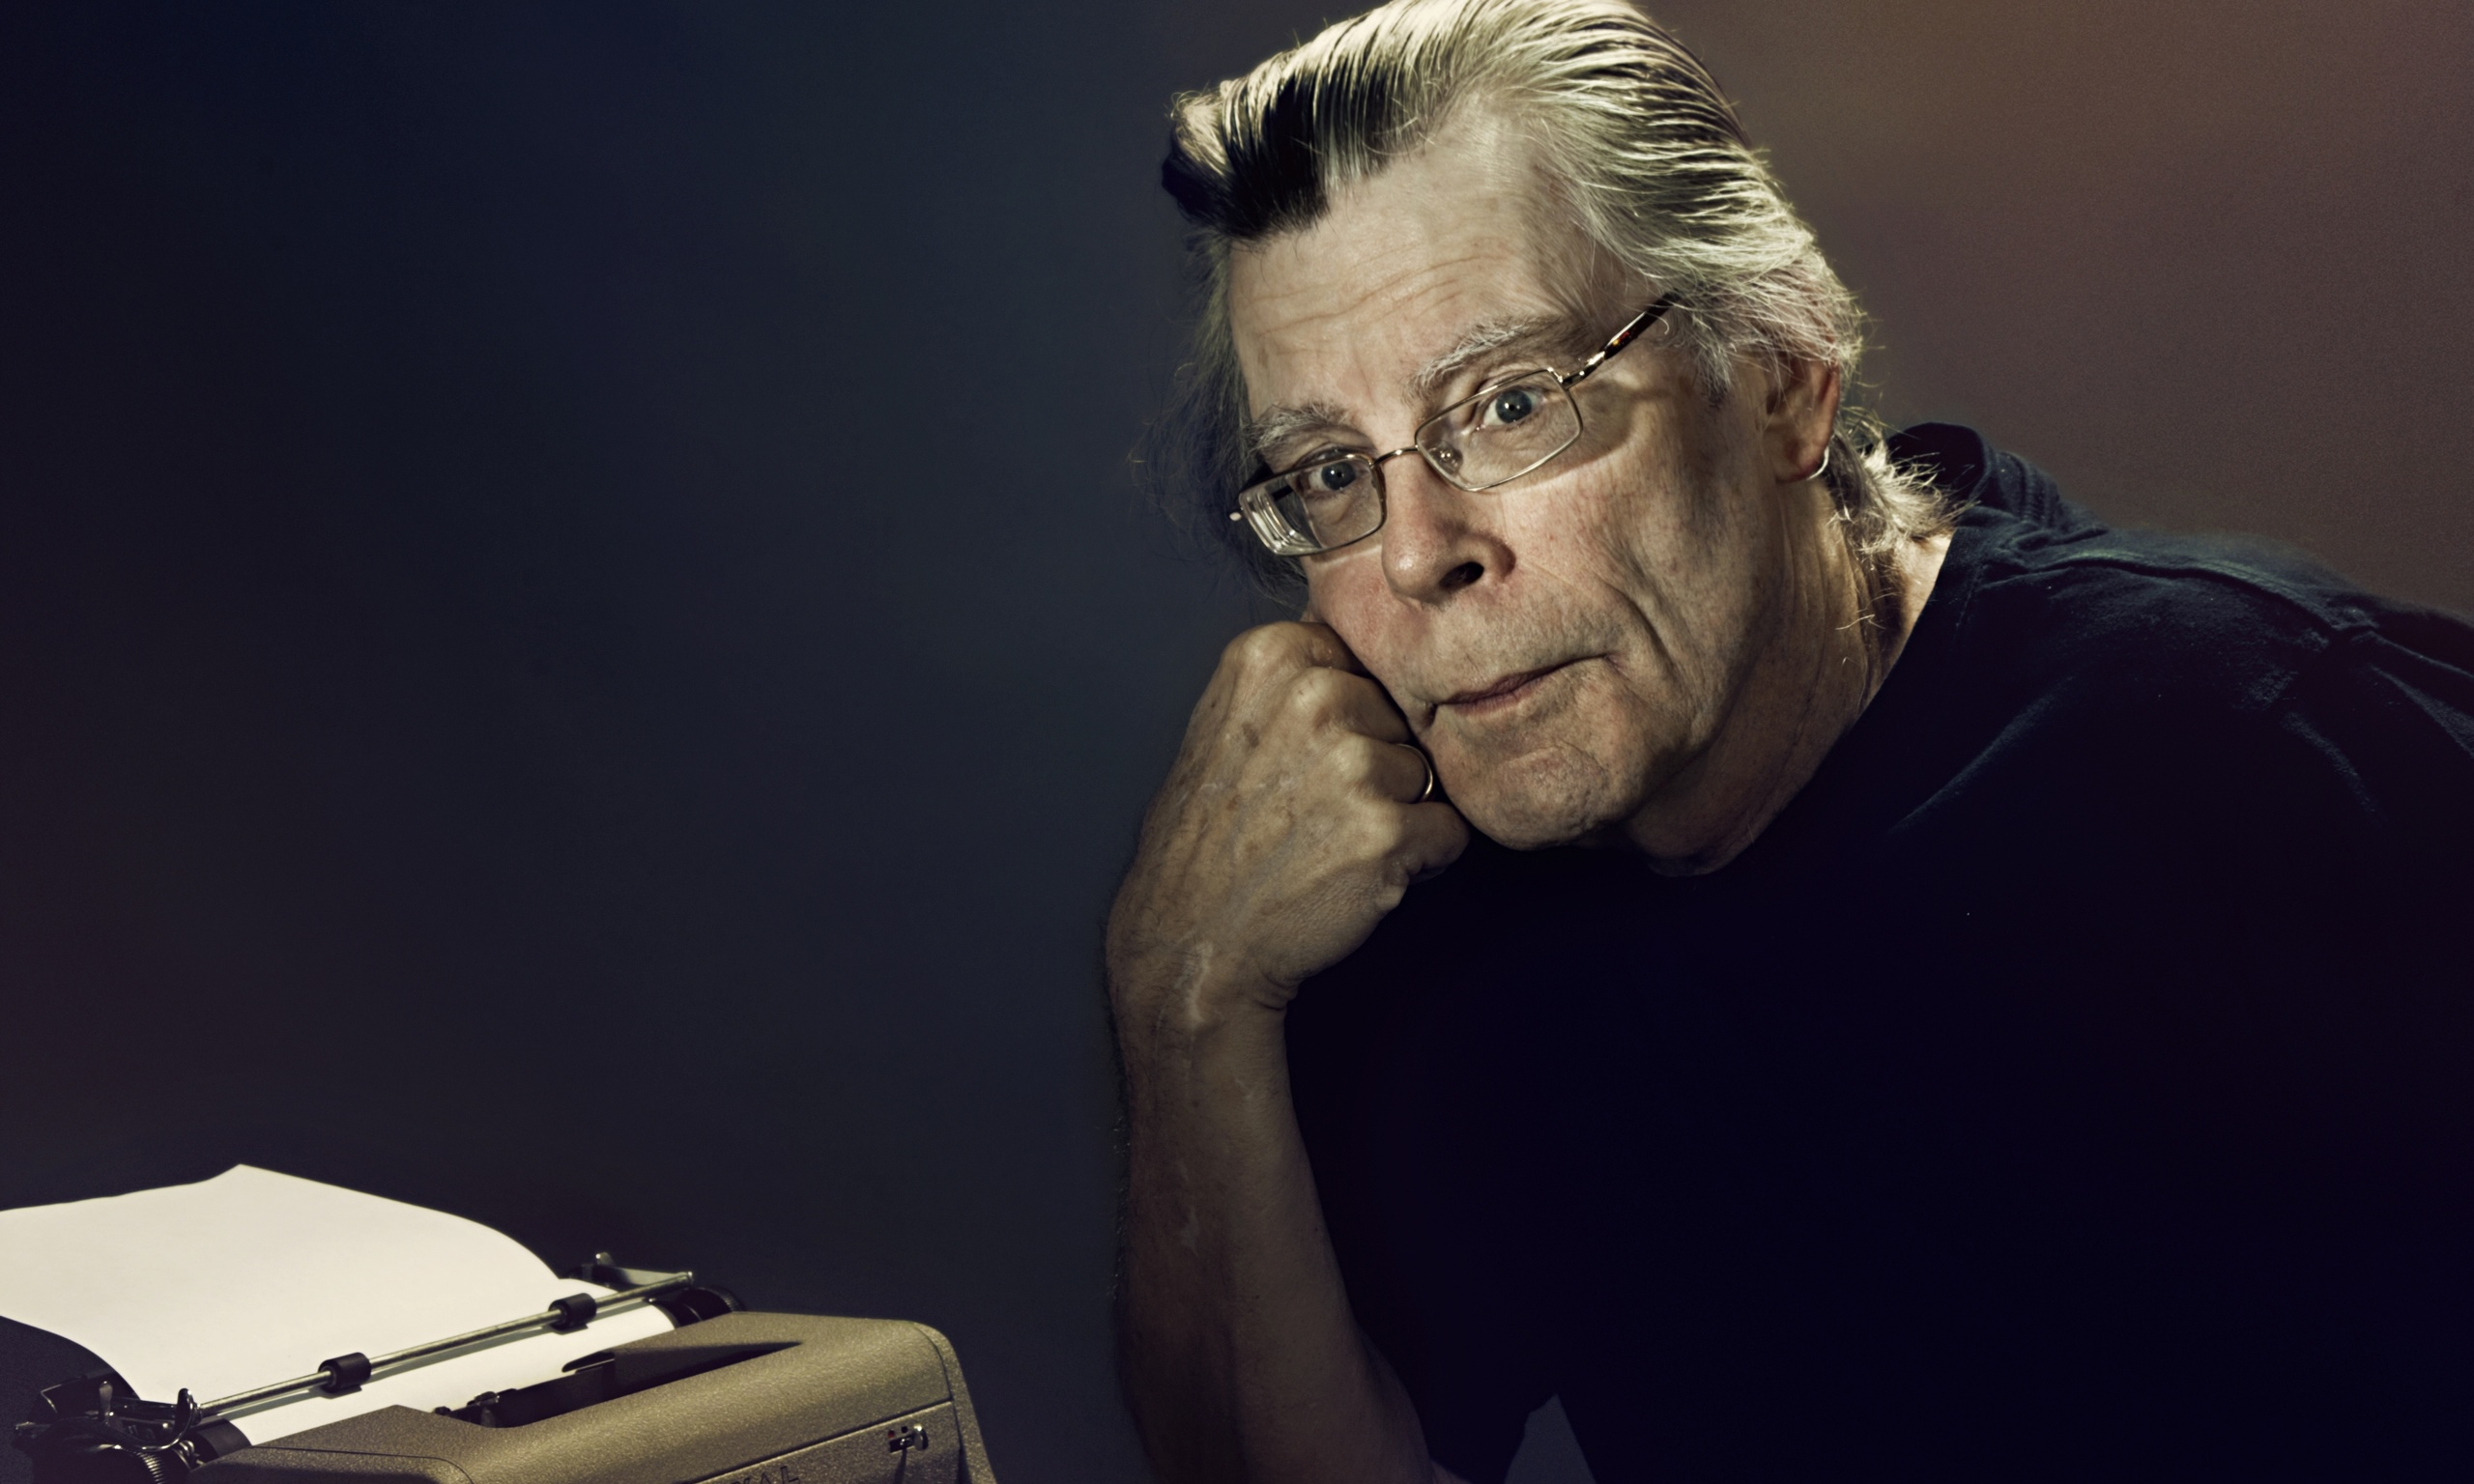 Stephen King´s 'The Stand' likely to become a TV Mini Series